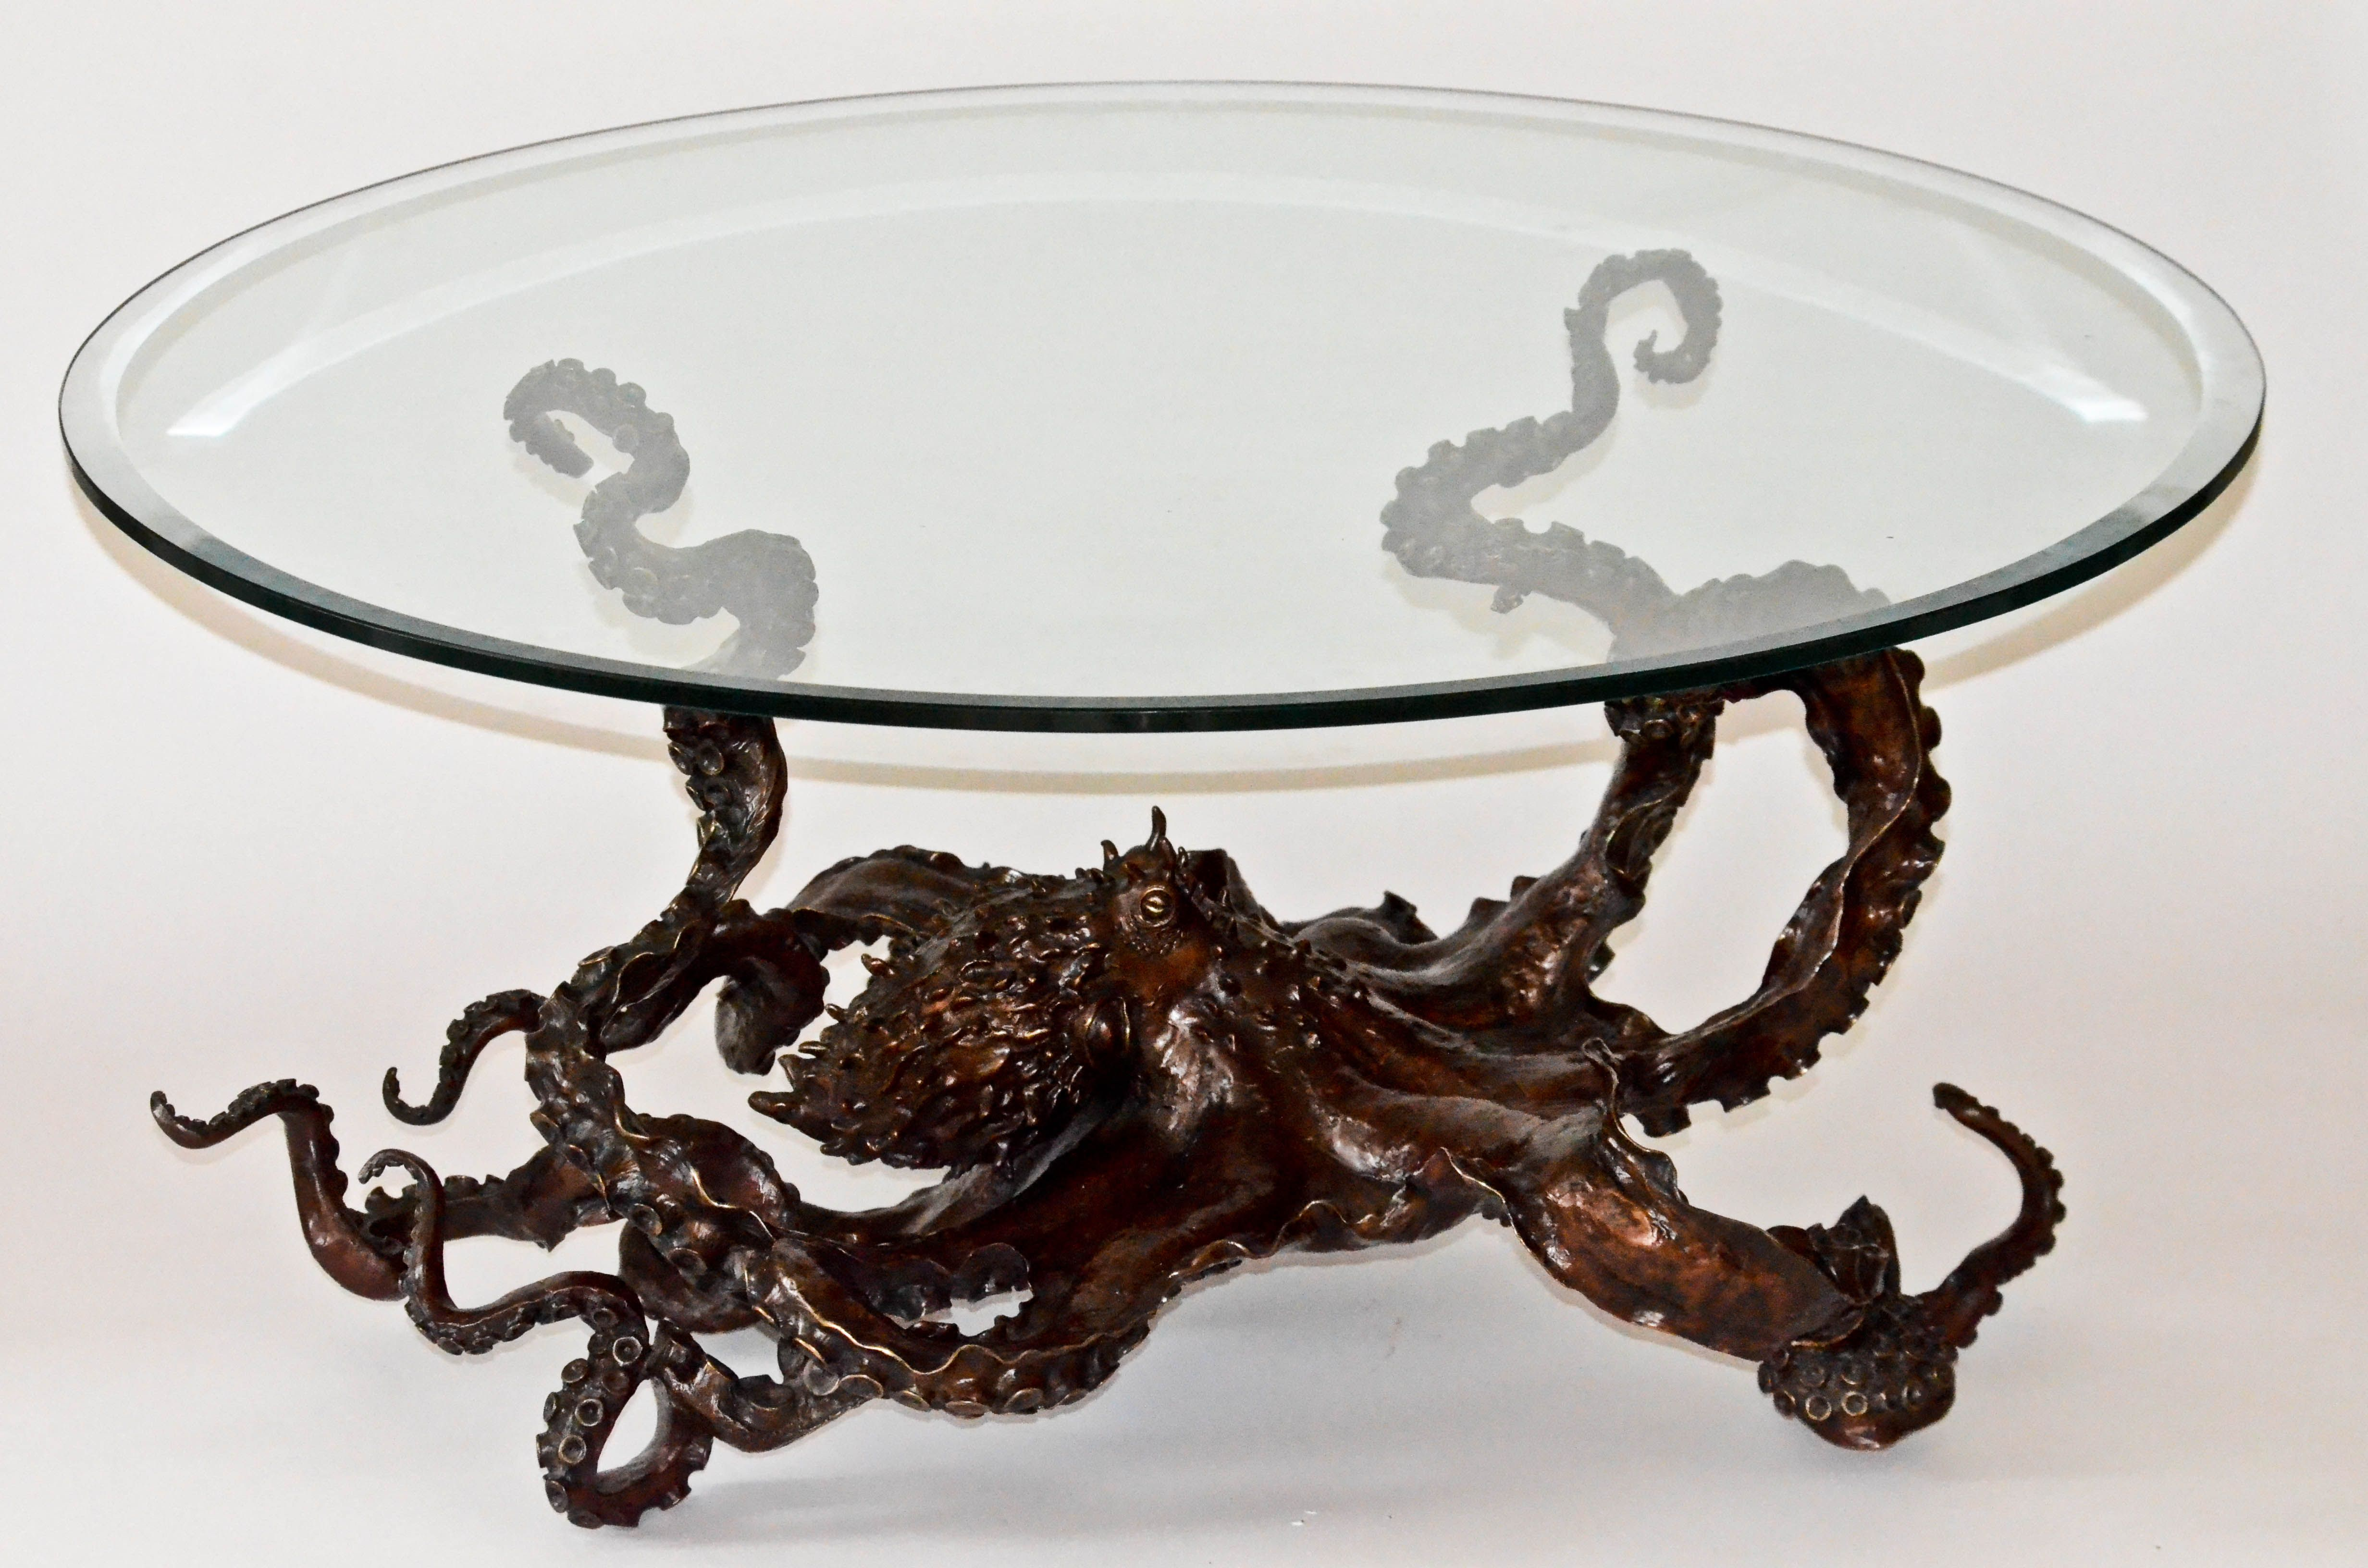 Bear Sculptures Coffe Table For Sale For Sale Cephalopod